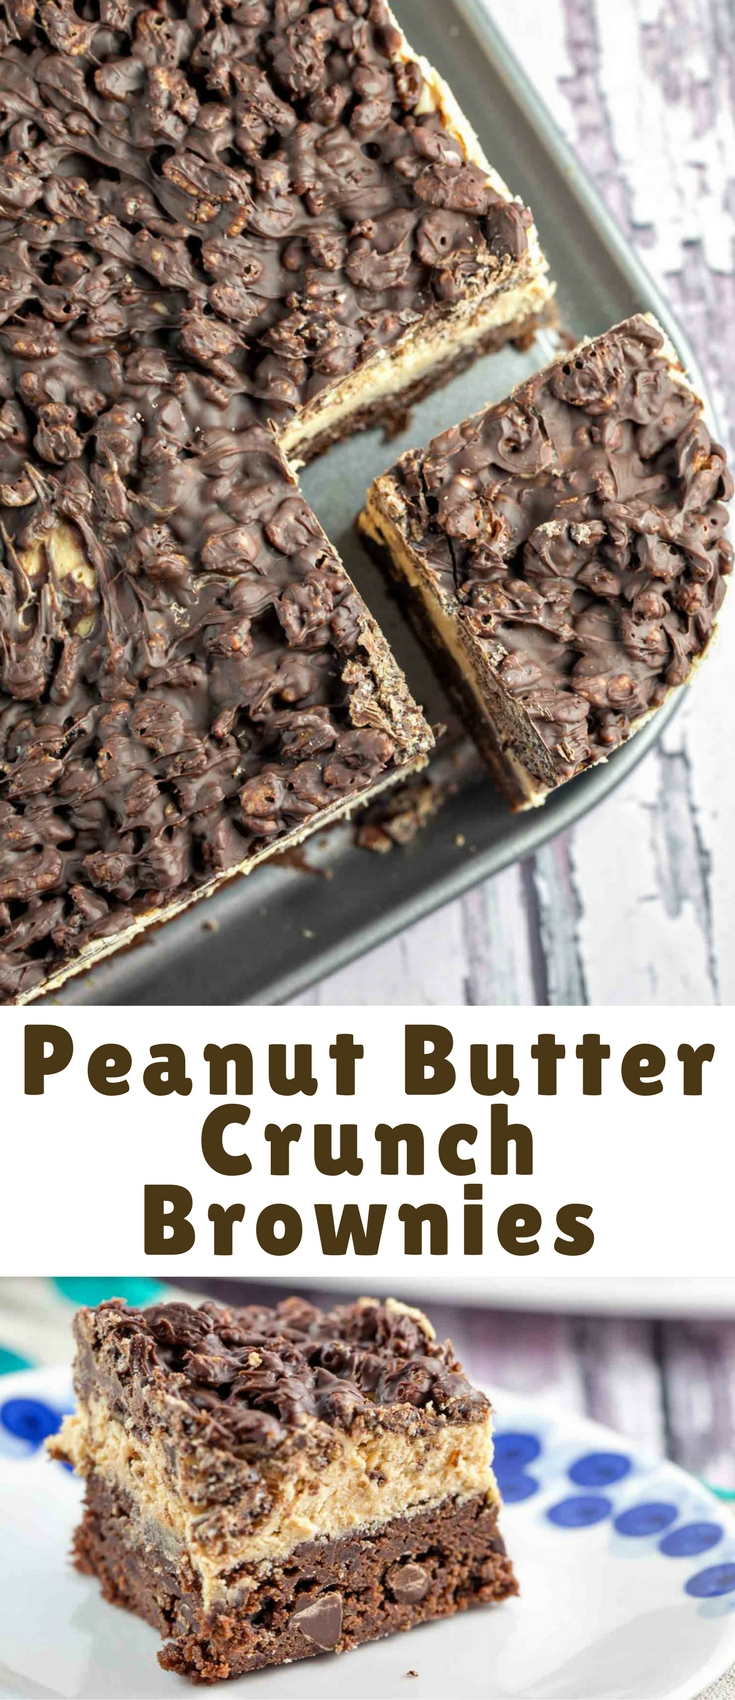 Easy homemade brownies, peanut butter ganache frosting, and a chocolate crunch layer – these peanut butter crunch brownies are a quick and easy freezer-friendly party treat!